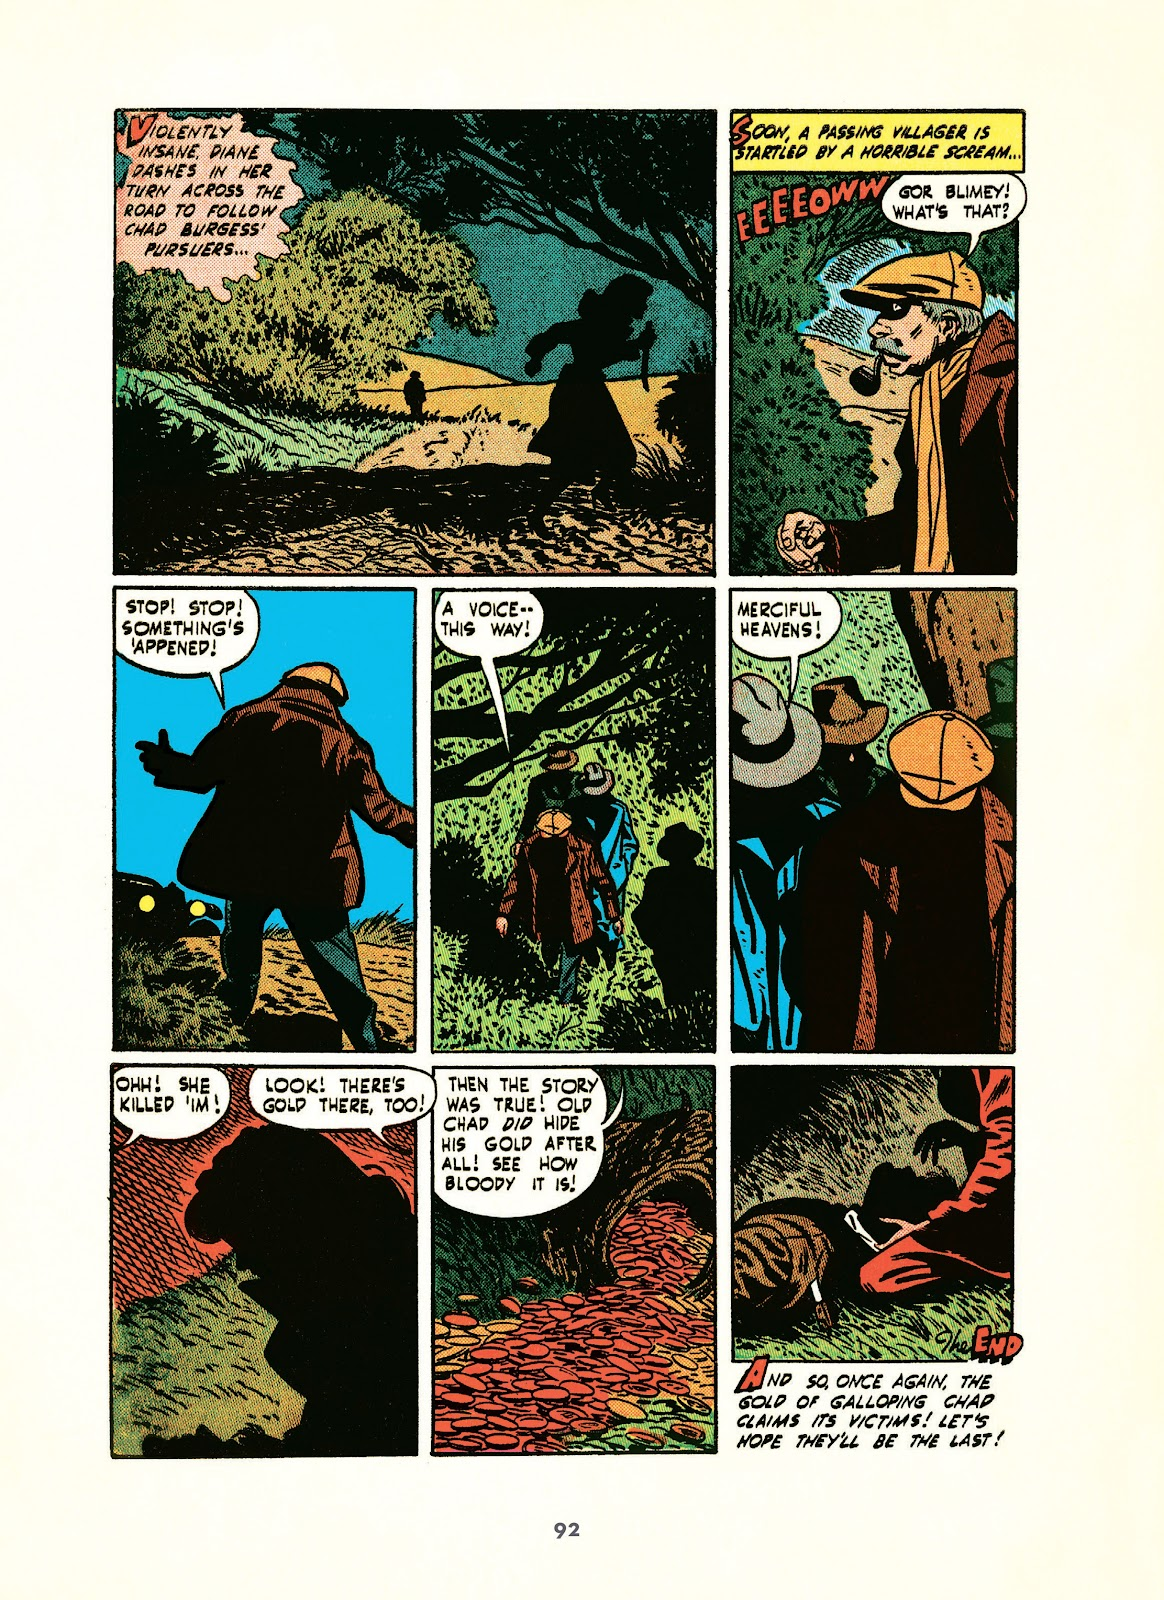 Read online Setting the Standard: Comics by Alex Toth 1952-1954 comic -  Issue # TPB (Part 1) - 91